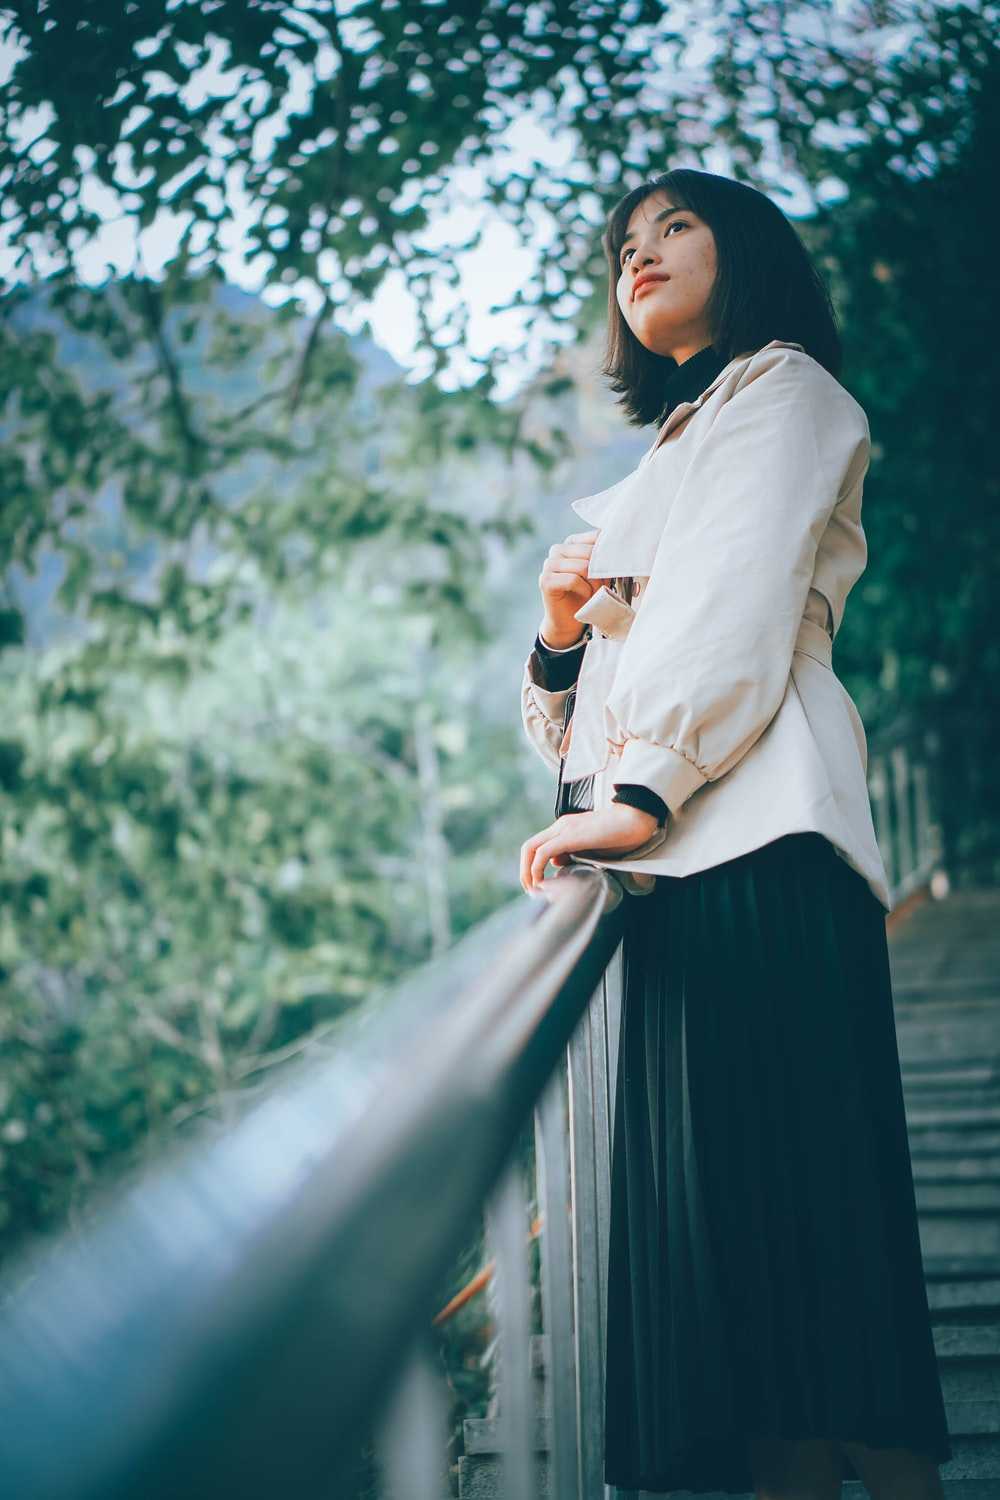 woman in white long sleeve shirt and black skirt standing on bridge during daytime